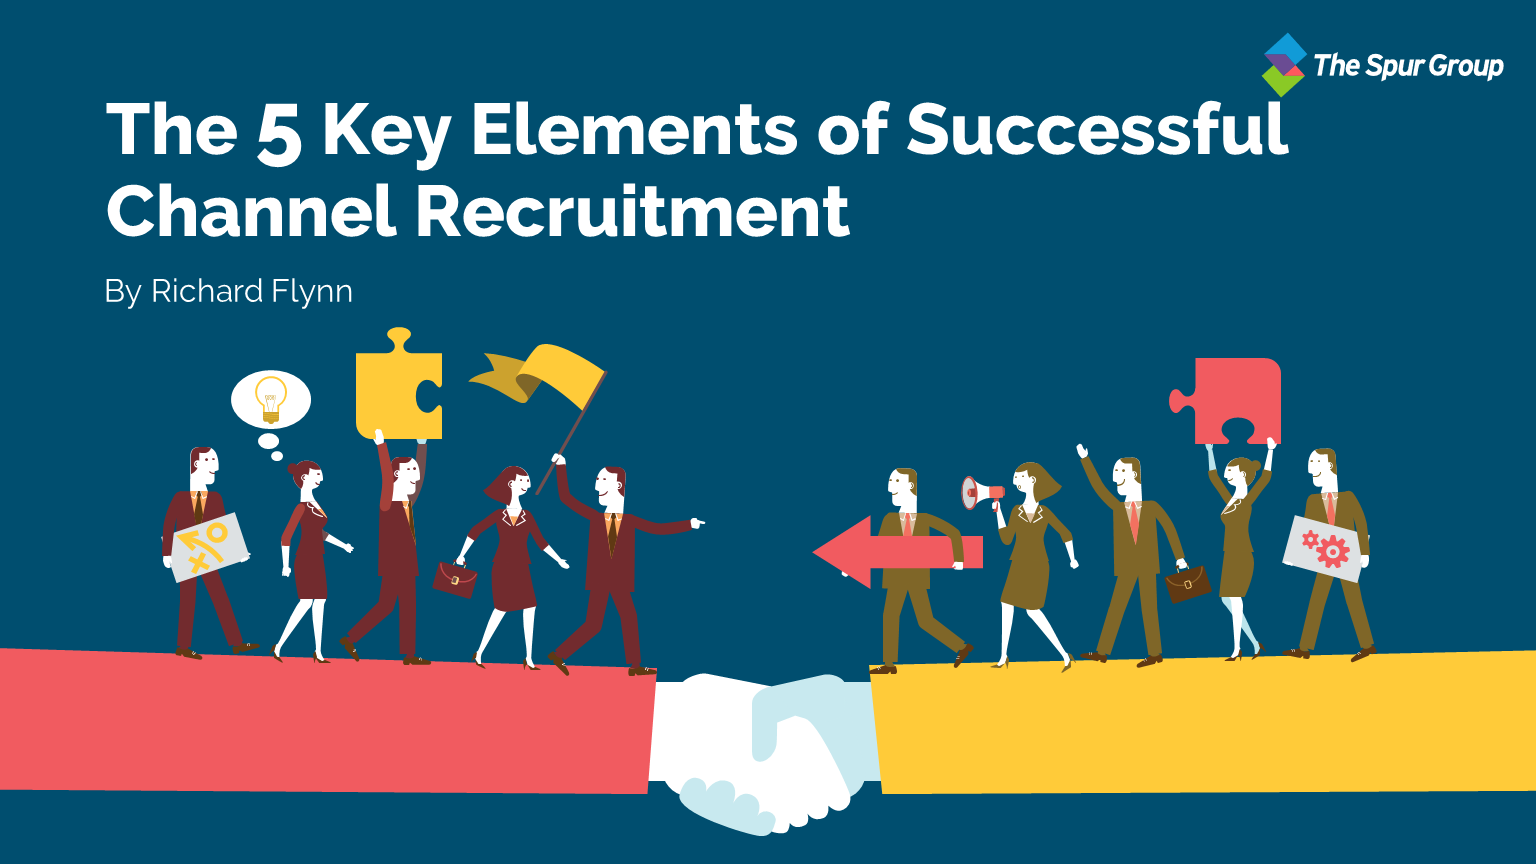 The 5 key elements of successful channel recruitment Featured Image